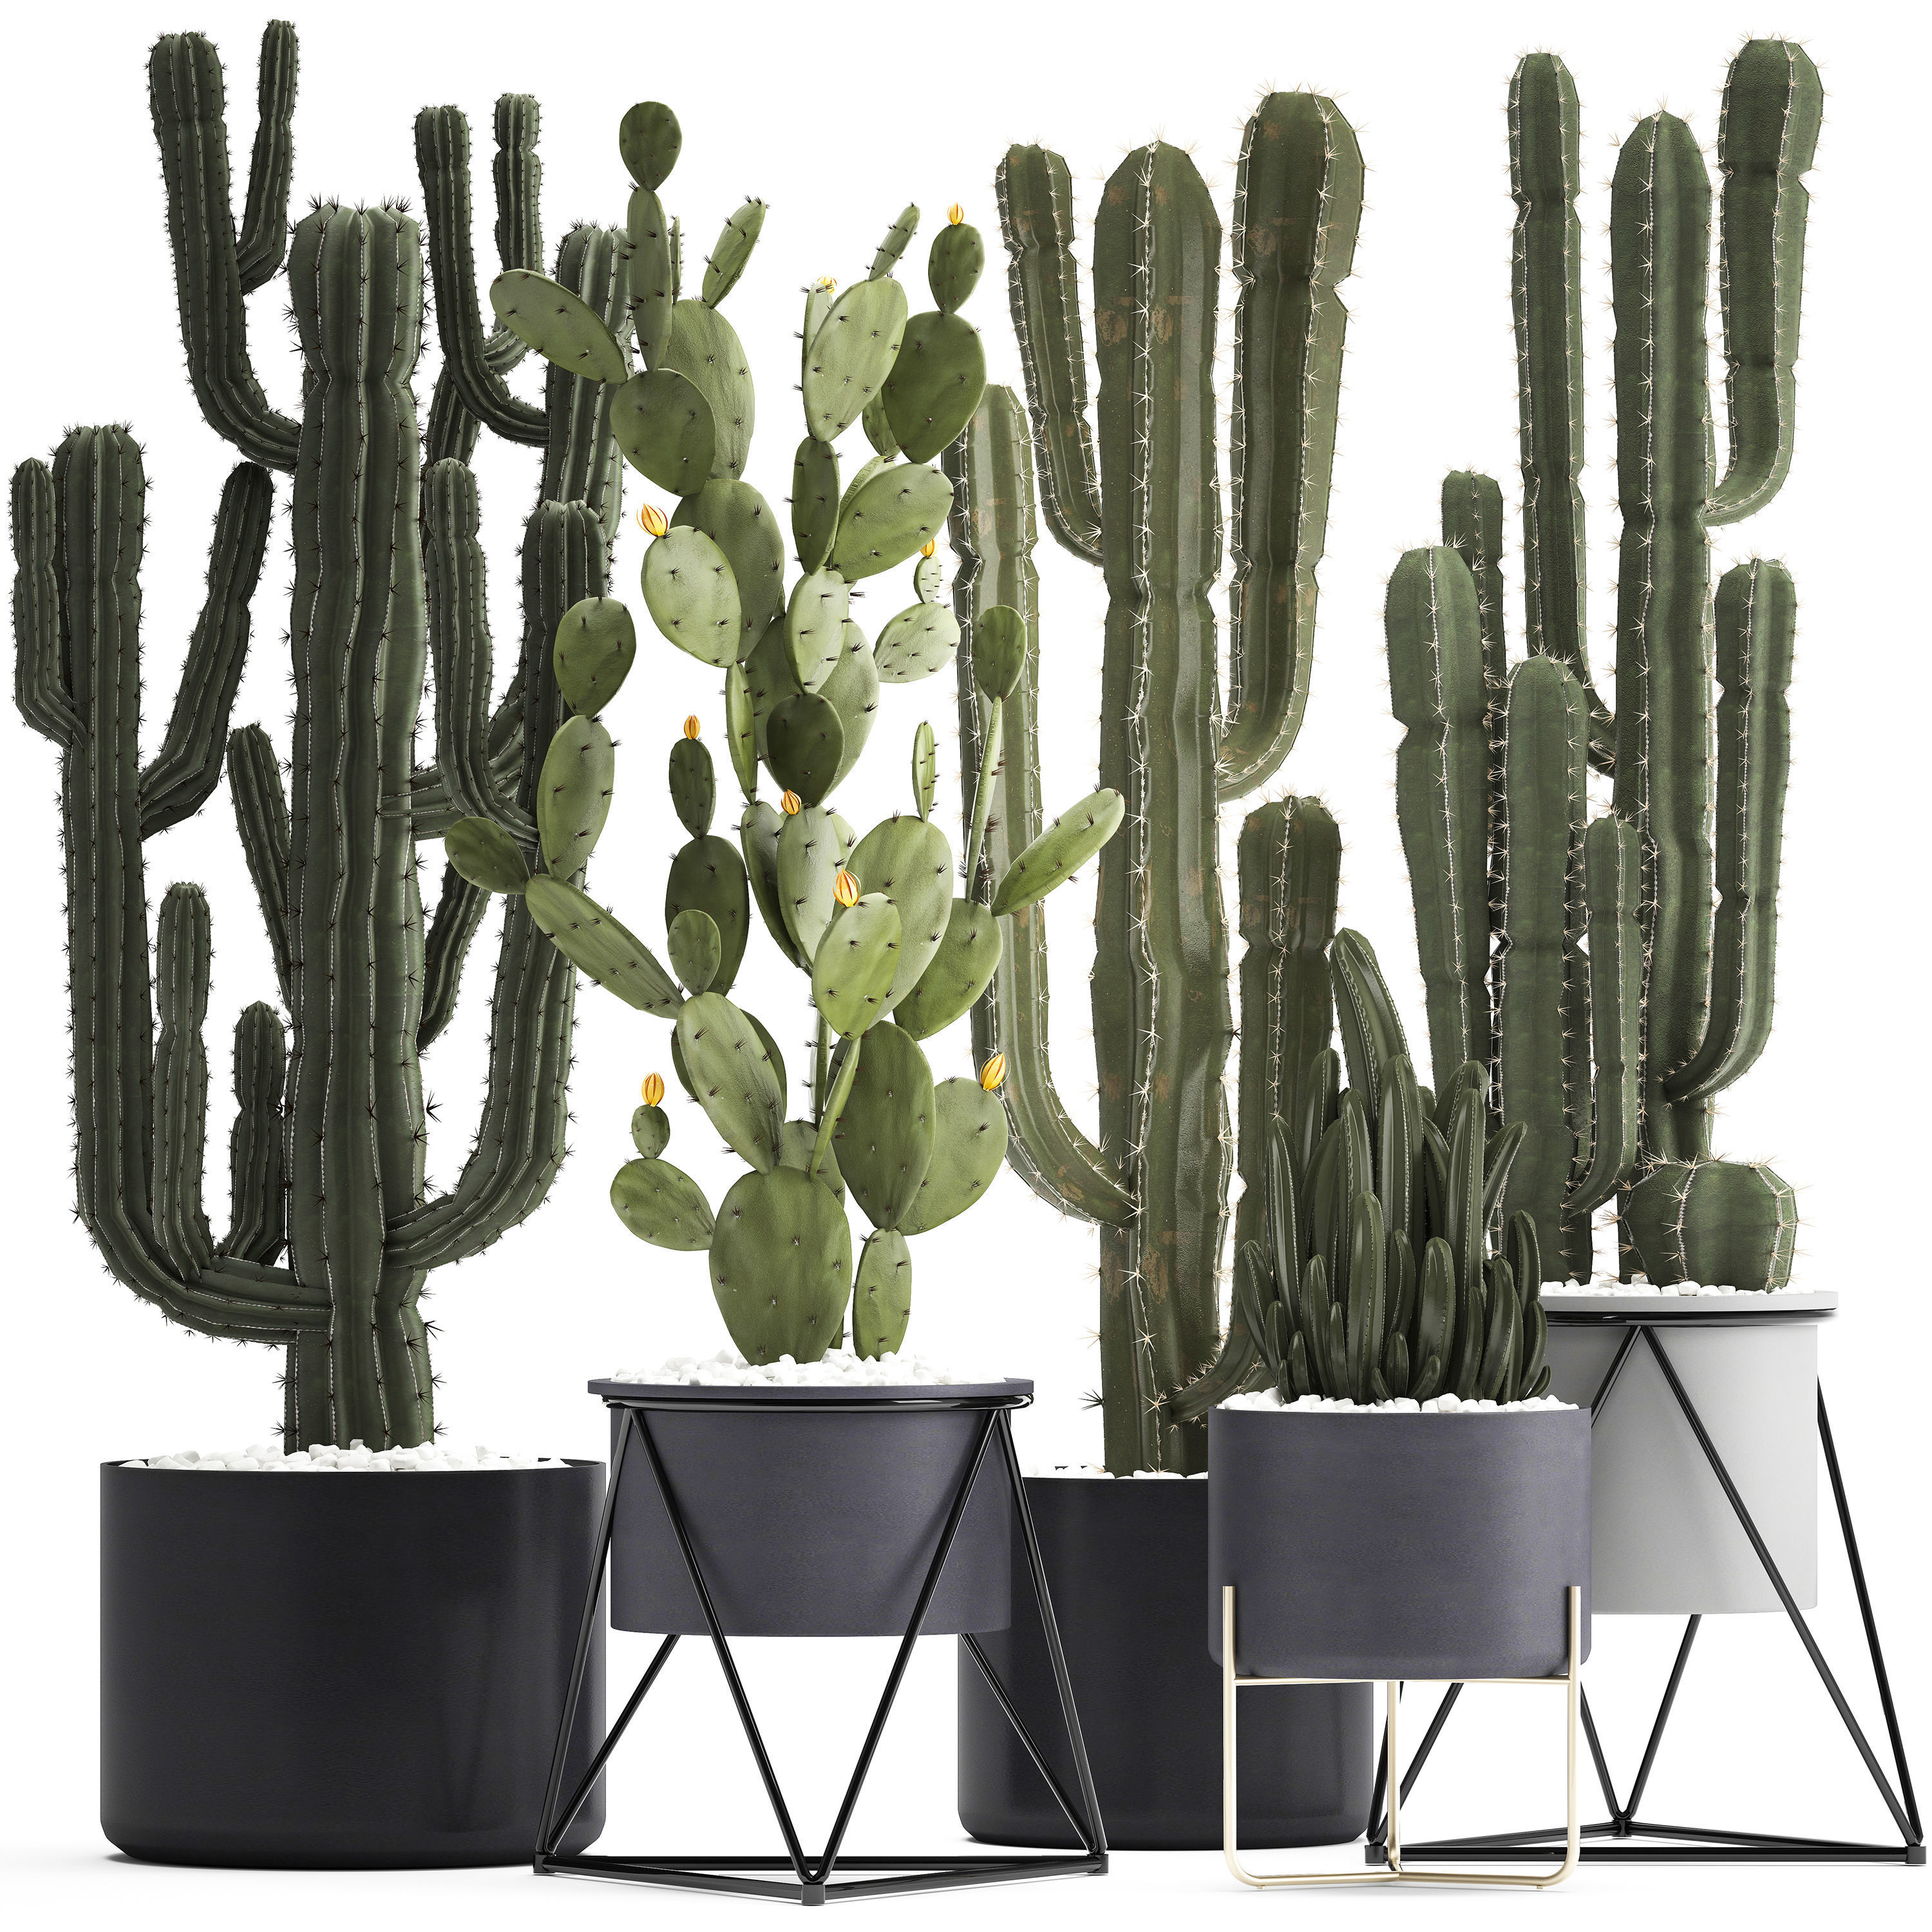 Collection of Exotic Cactus Plants